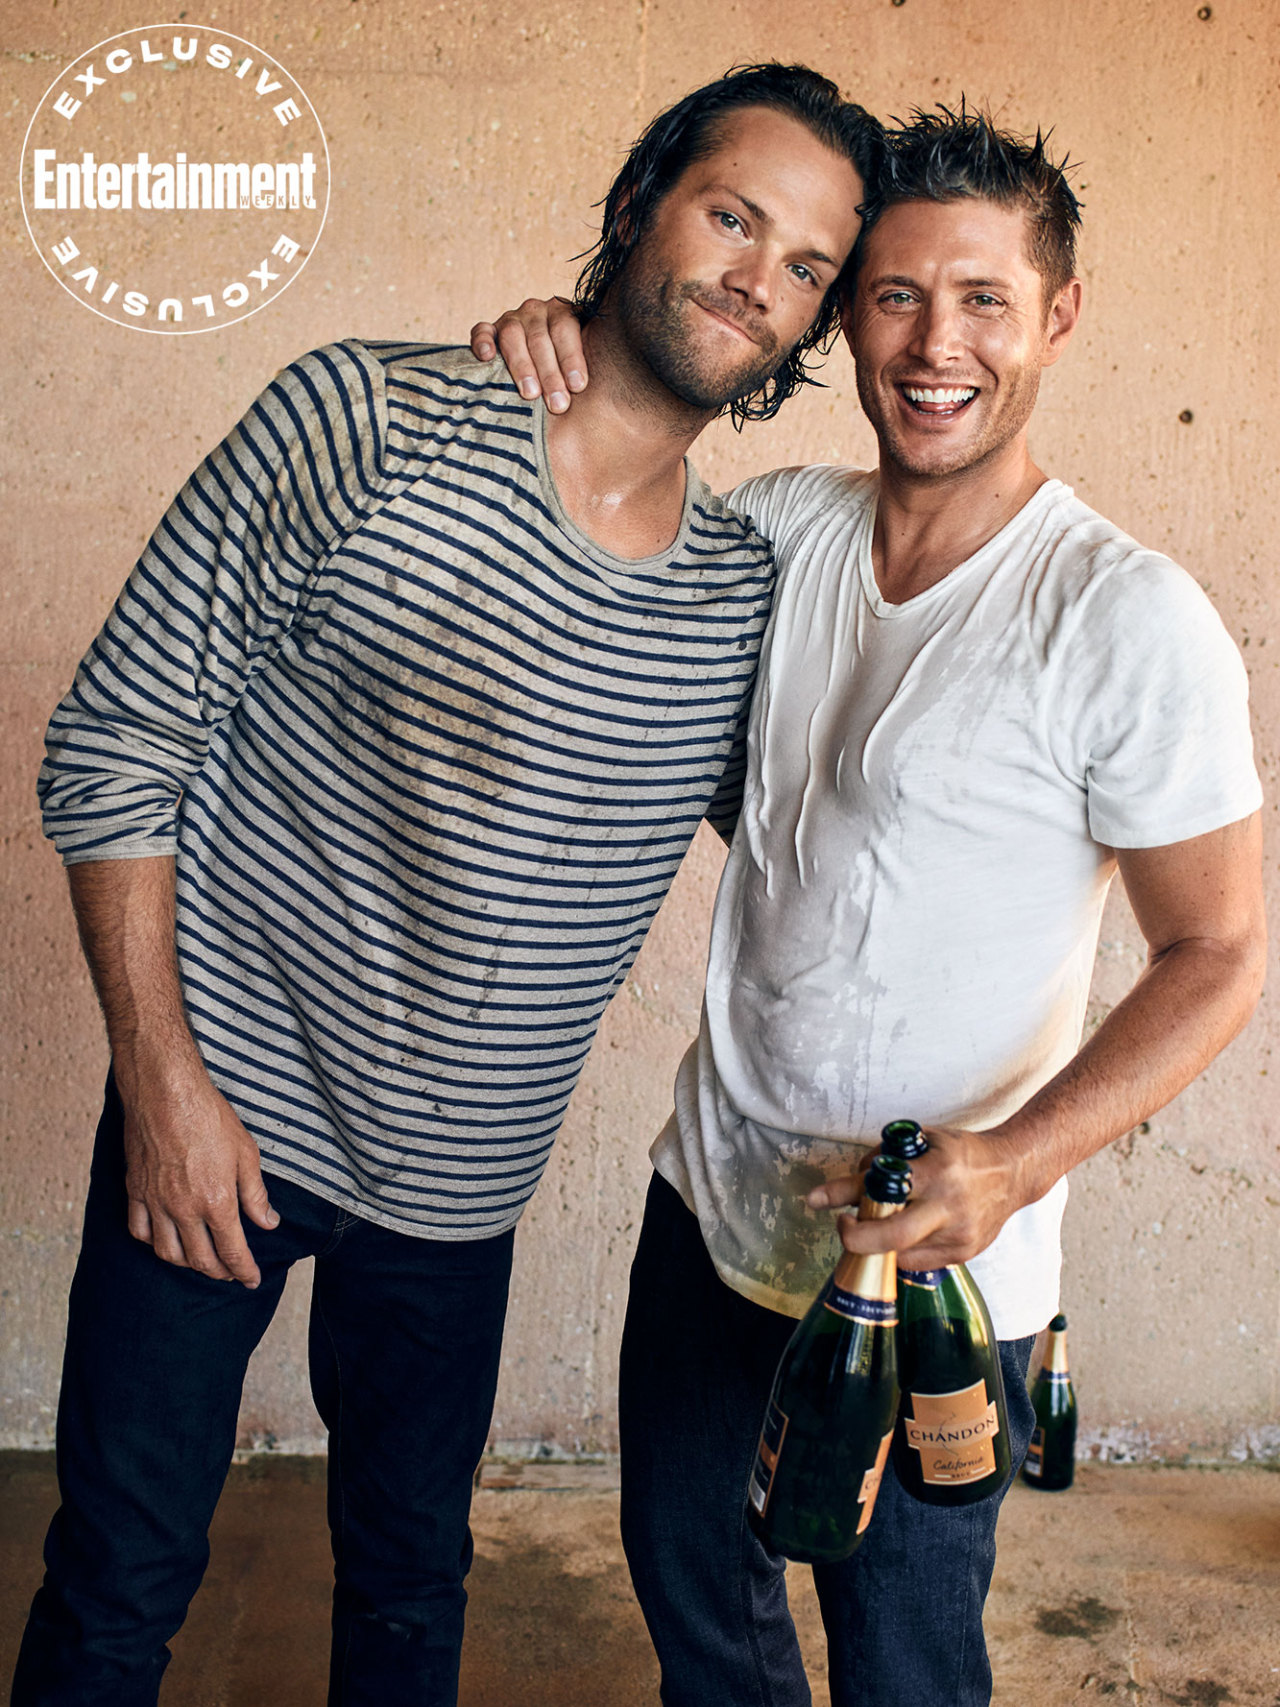 Jared and Jensen -EW exclusive portraits of the スーパーナチュラル cast